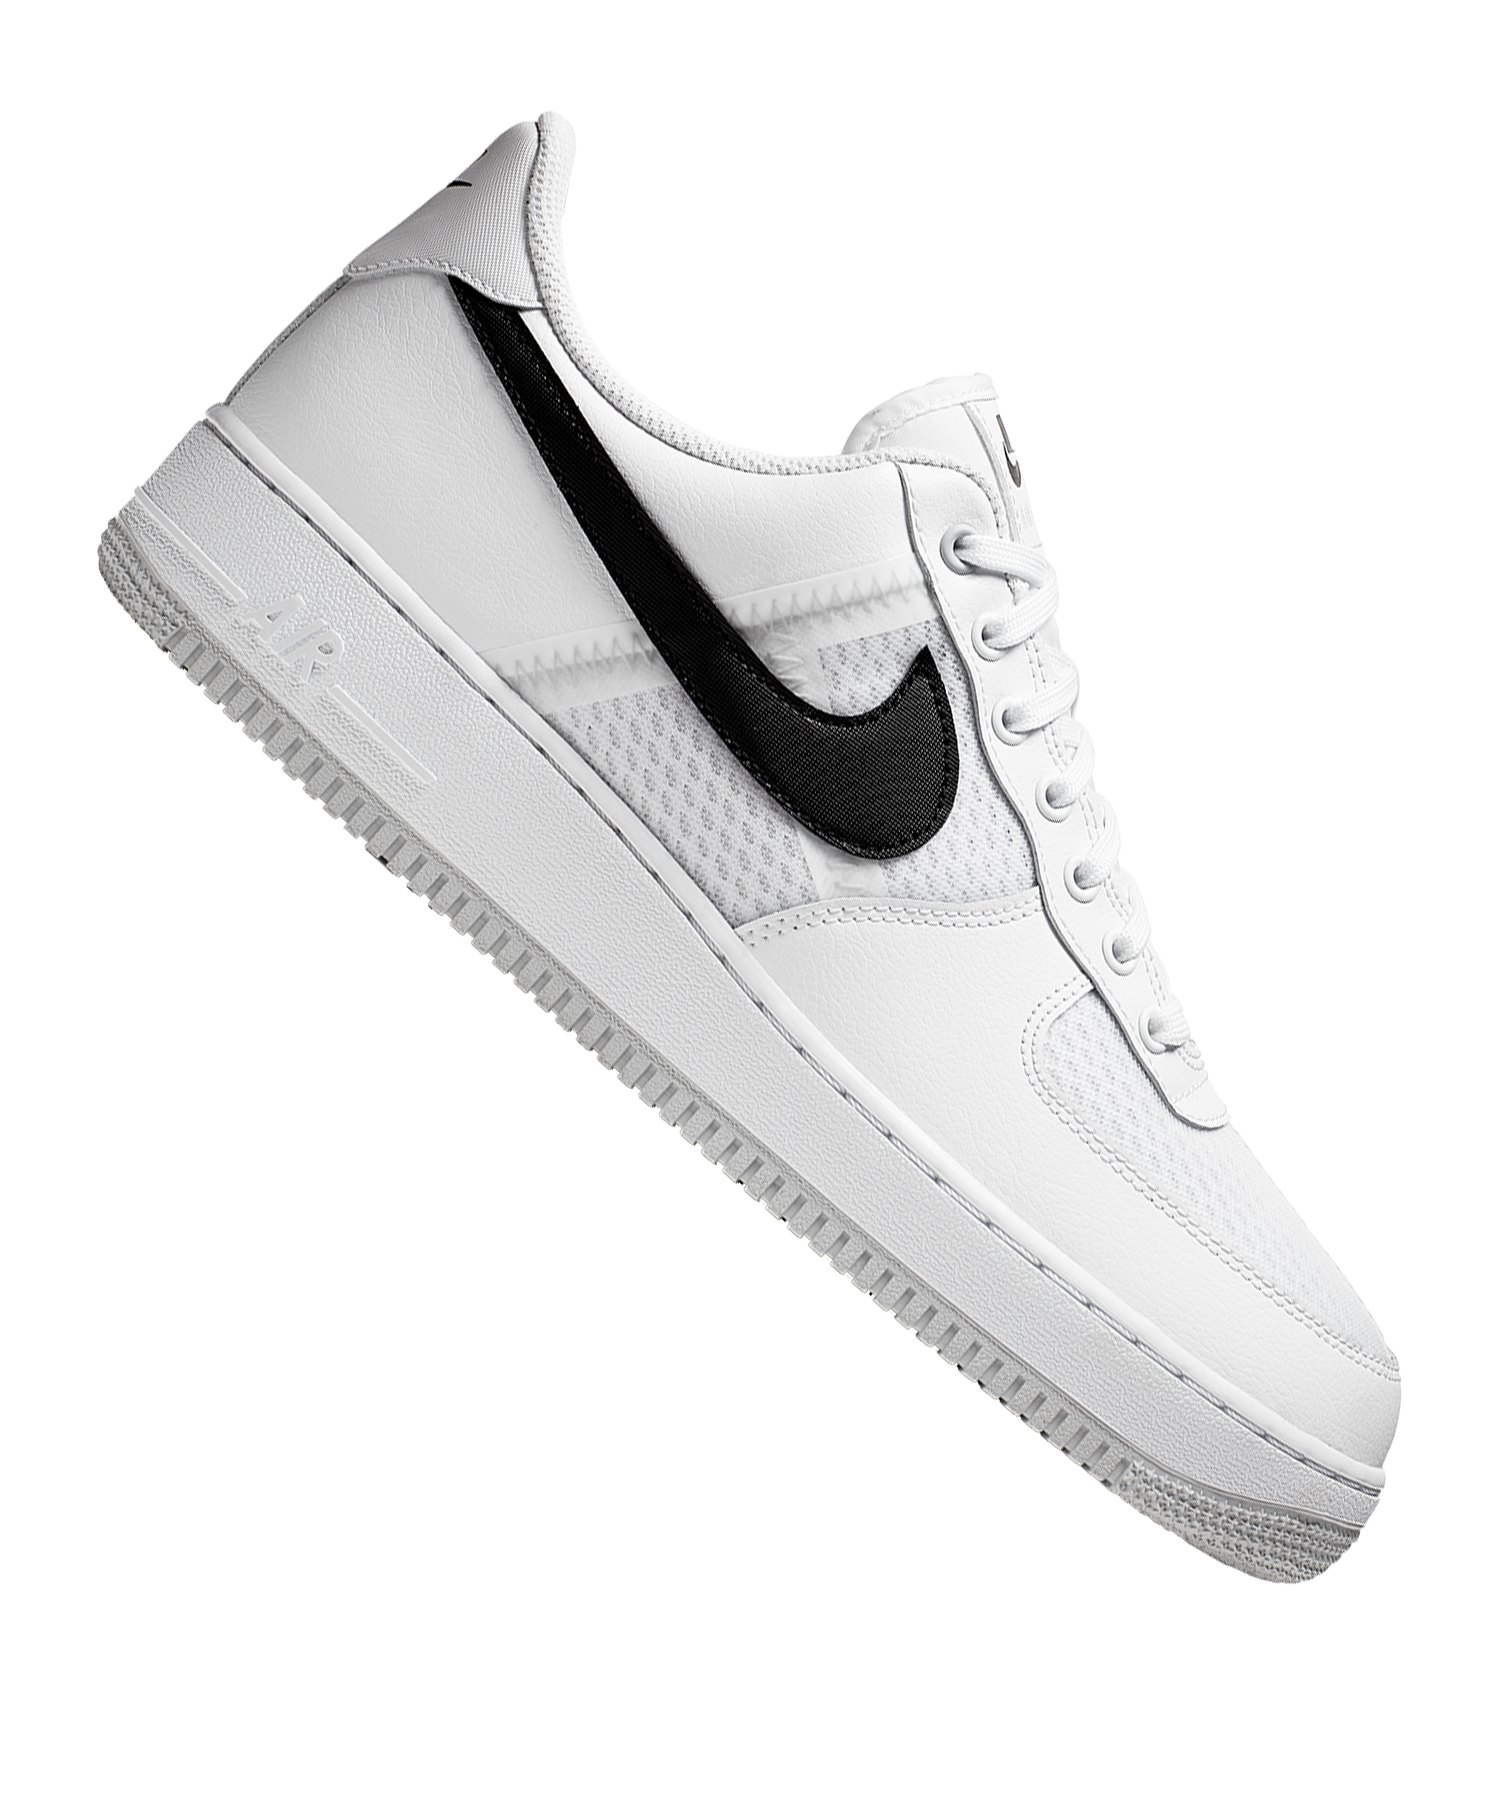 cheap for sale 100% genuine website for discount Nike